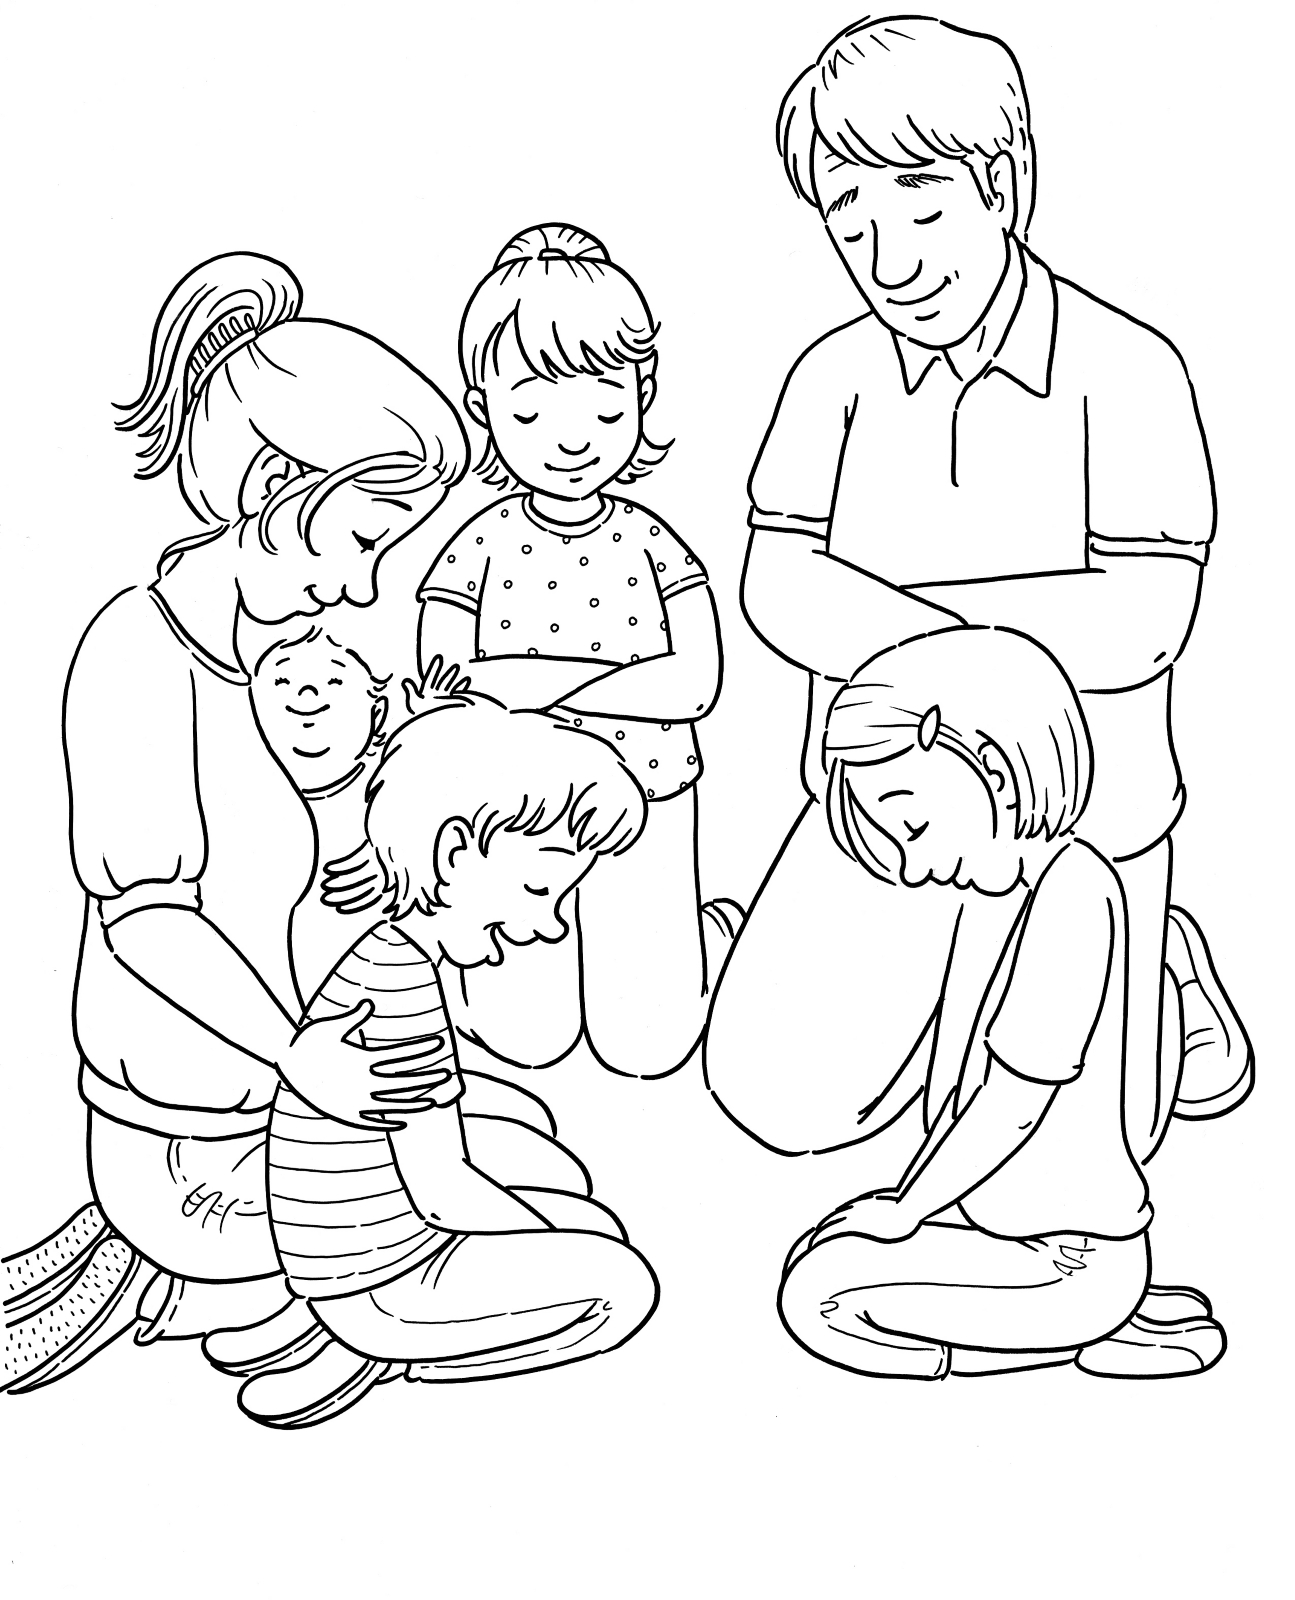 children coloring pages of families - photo#24